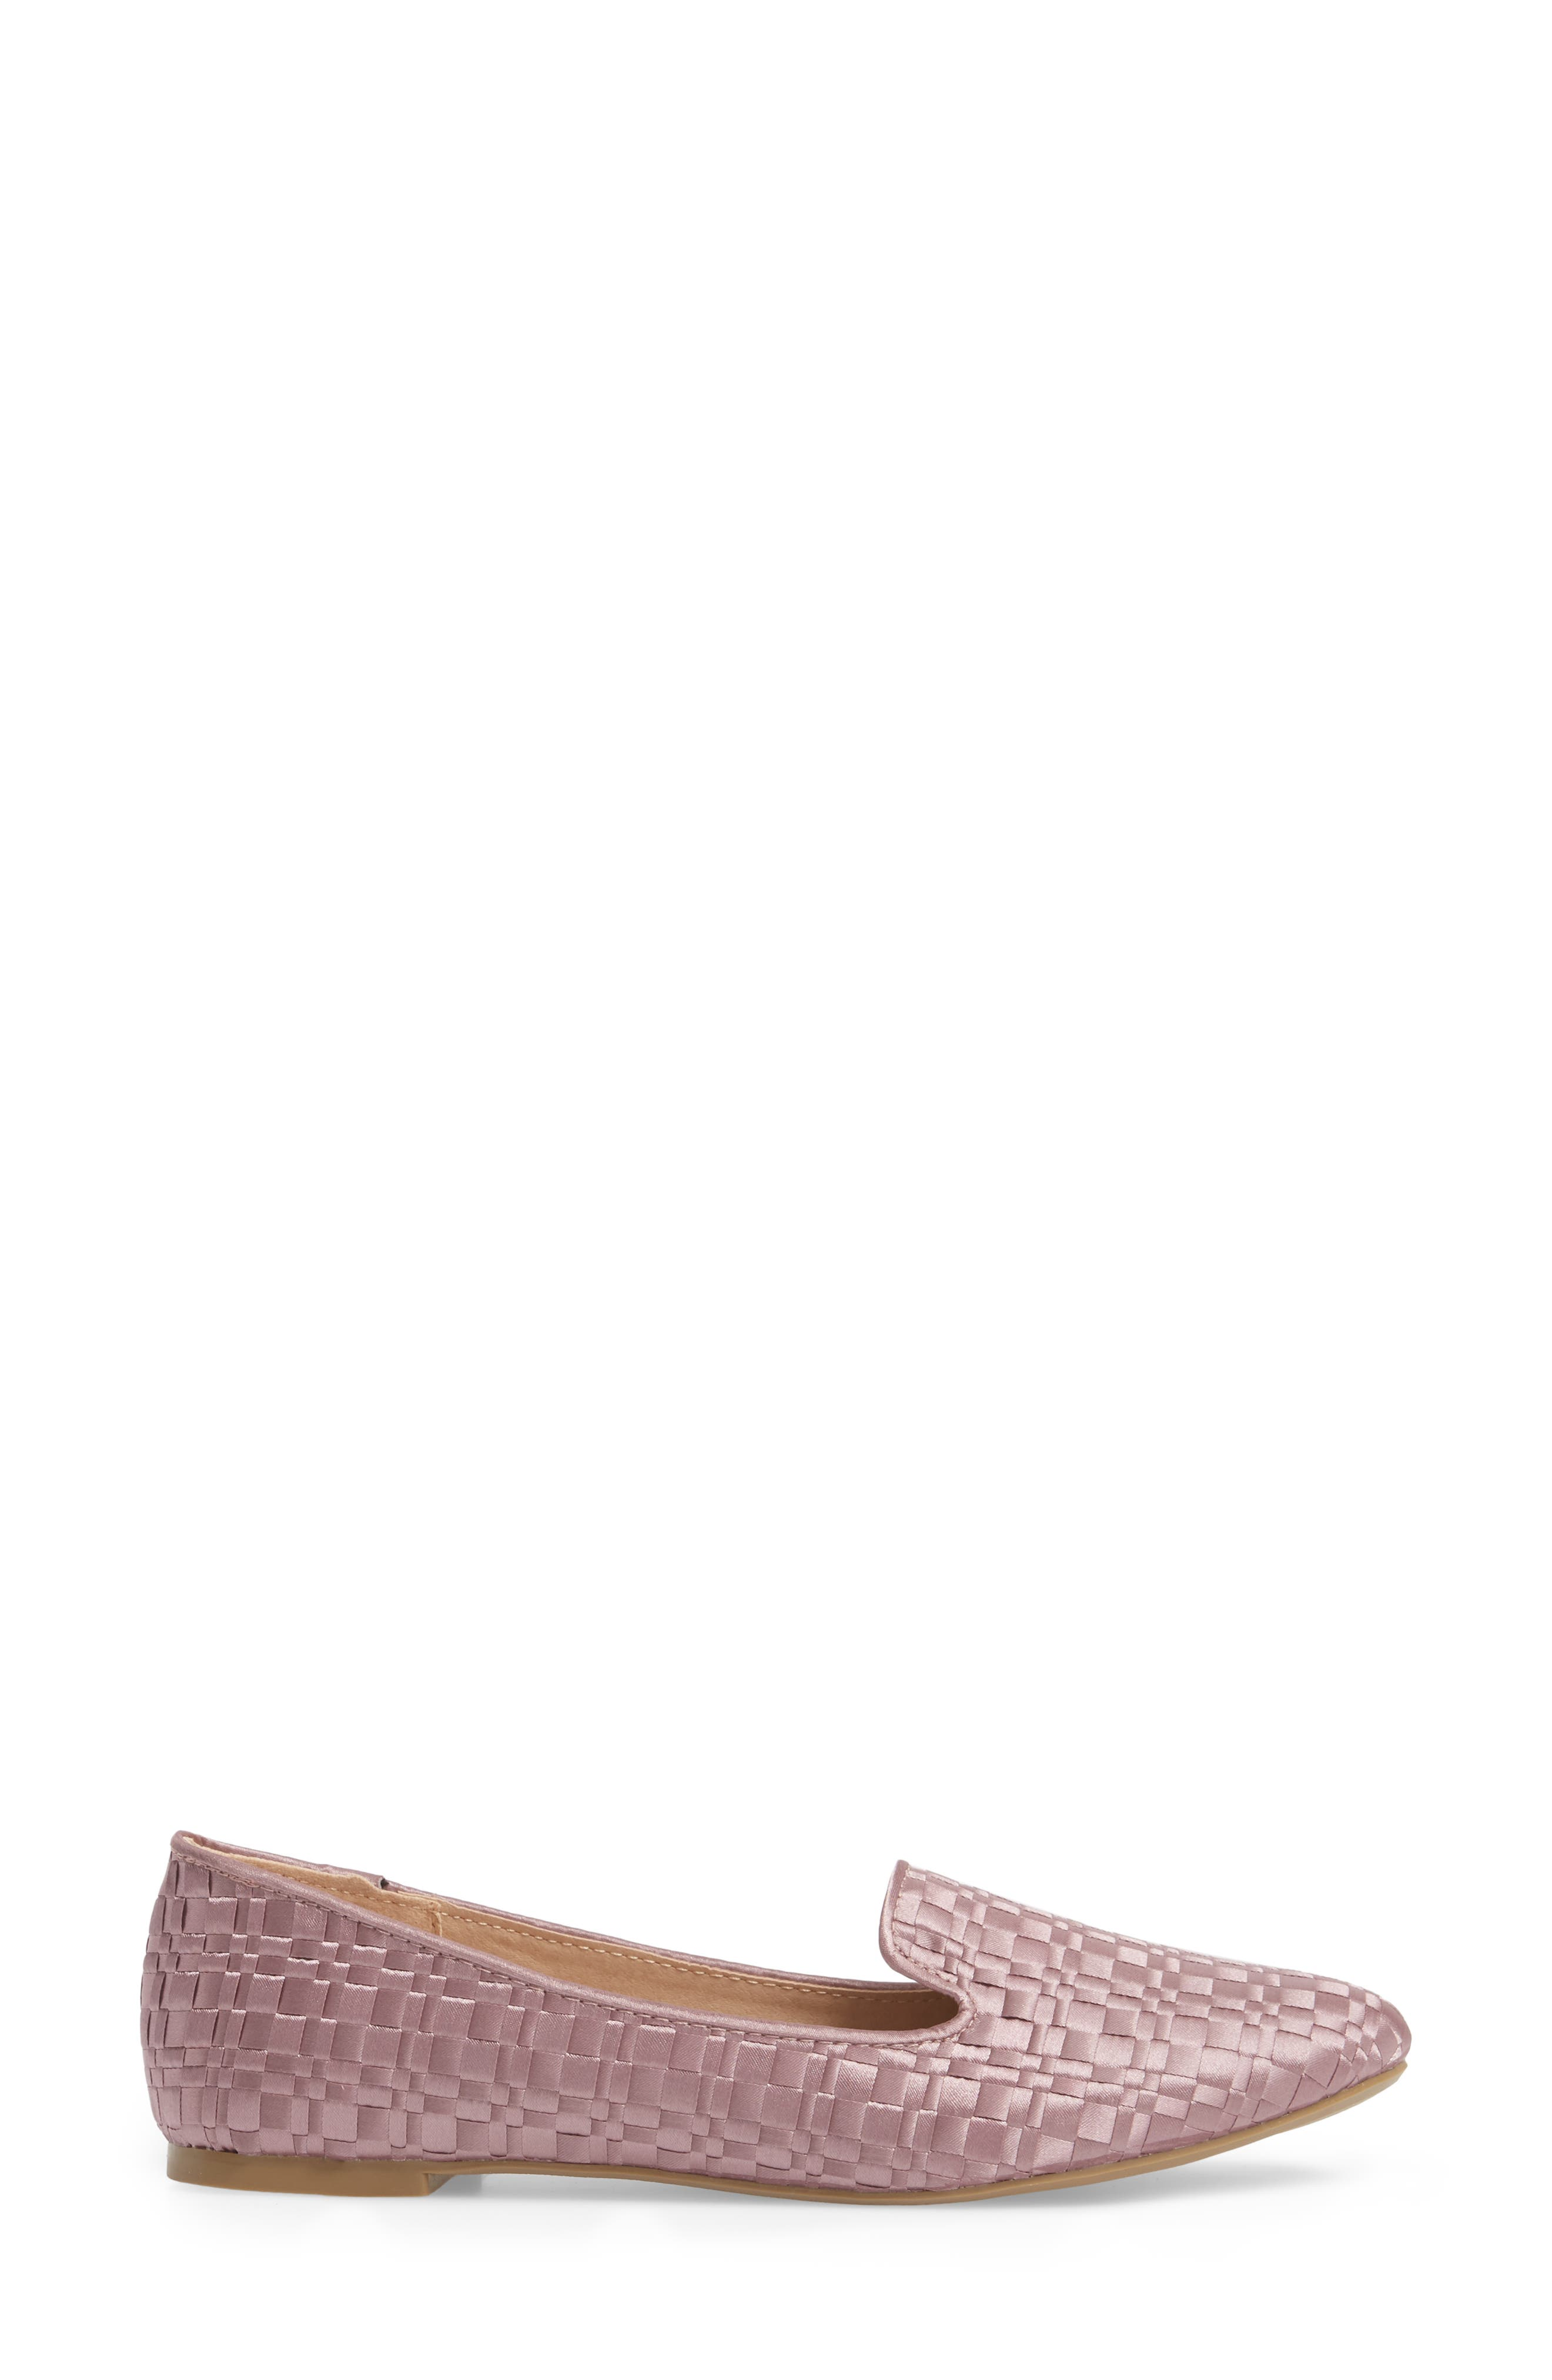 Sasha Textured Woven Loafer,                             Alternate thumbnail 3, color,                             Pink